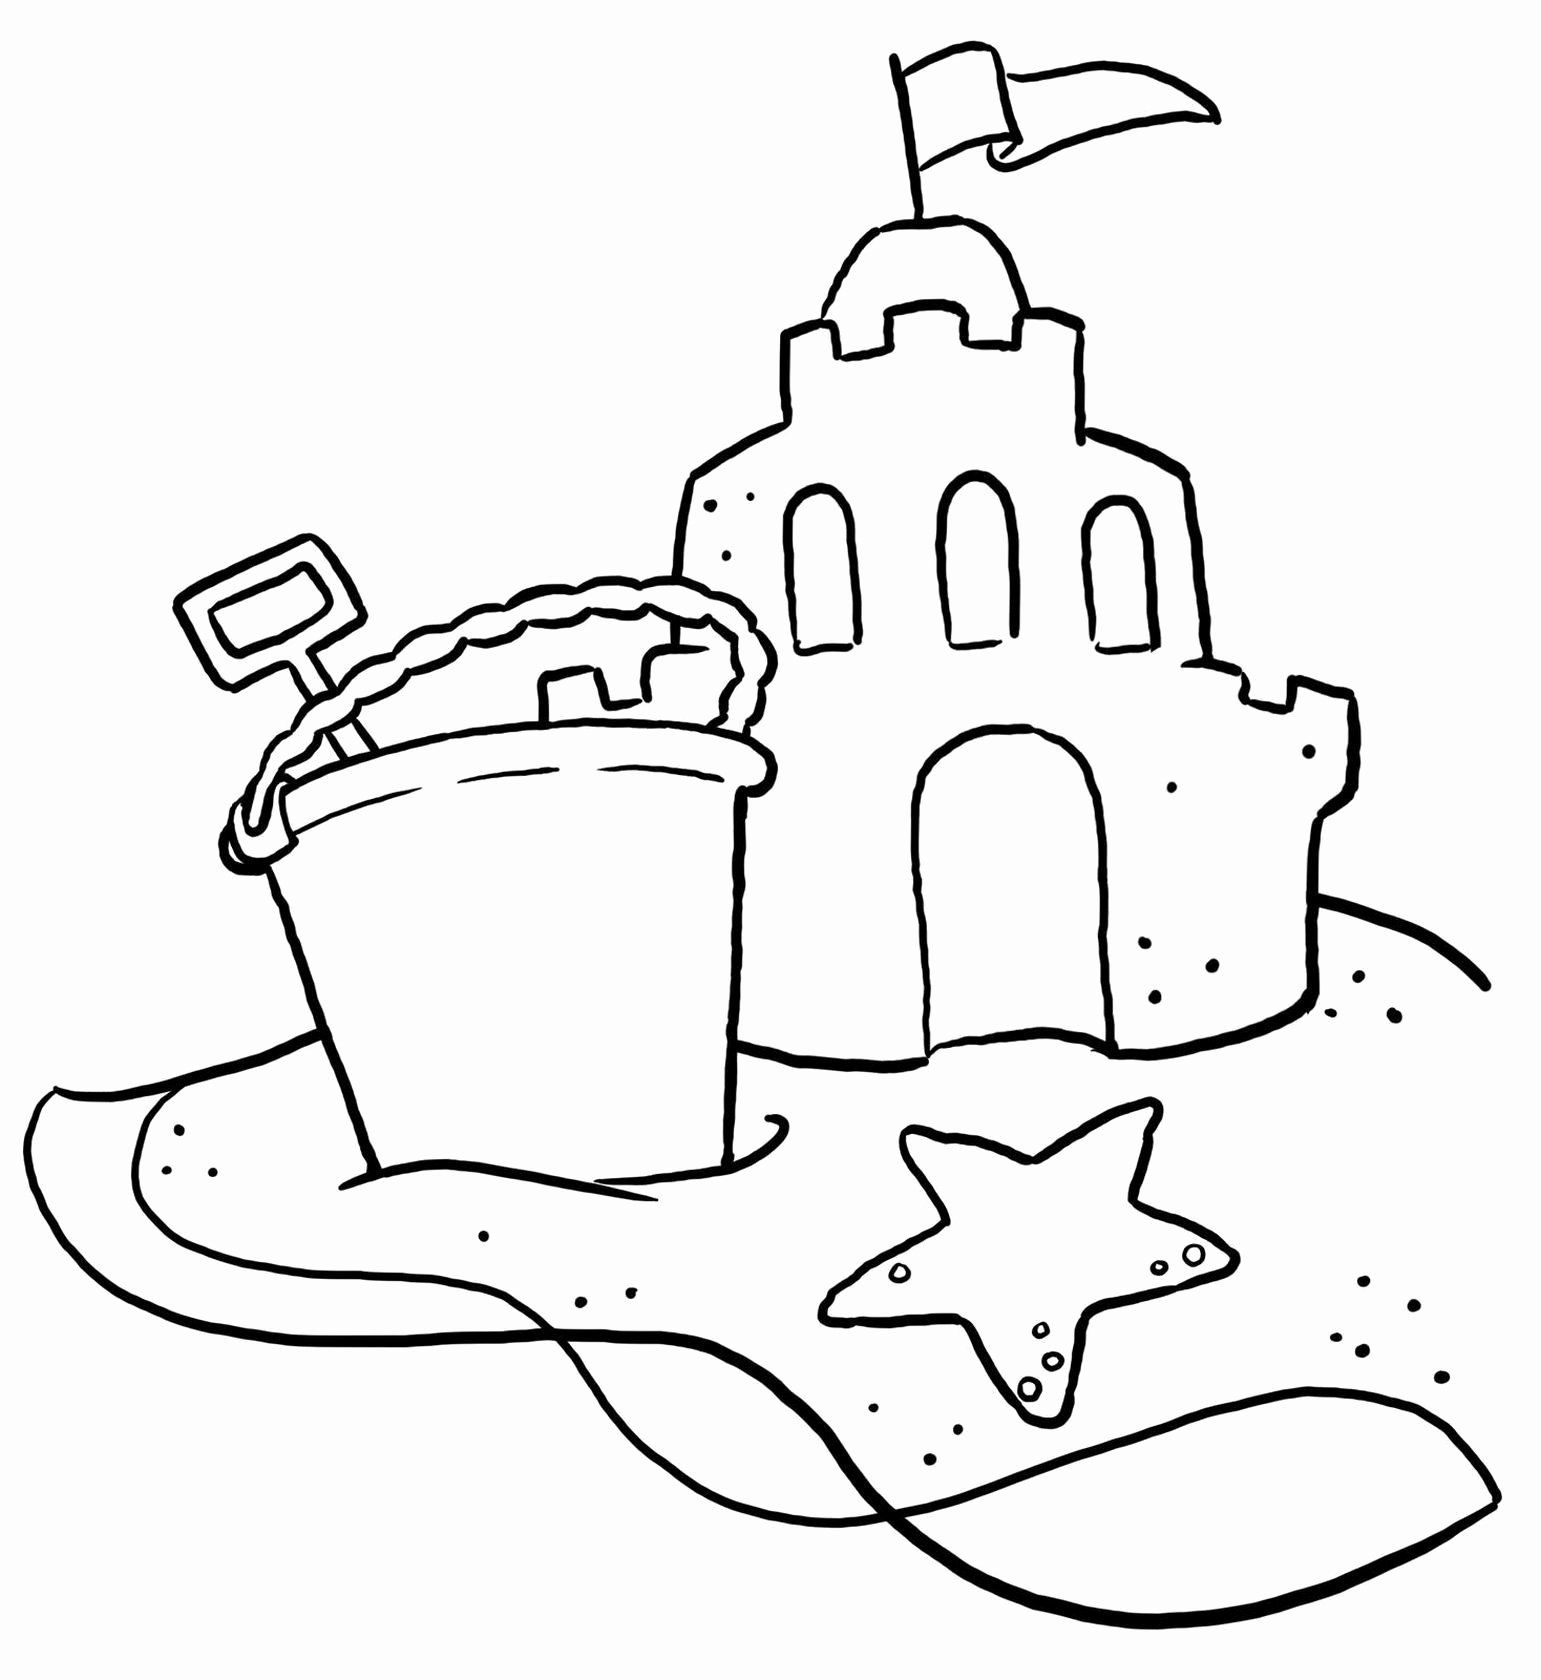 Sand Castle Coloring Page Luxury Beach Coloring Pages 20 Free Printable Sheets To Color Beach In 2020 Beach Coloring Pages Summer Coloring Pages Castle Coloring Page